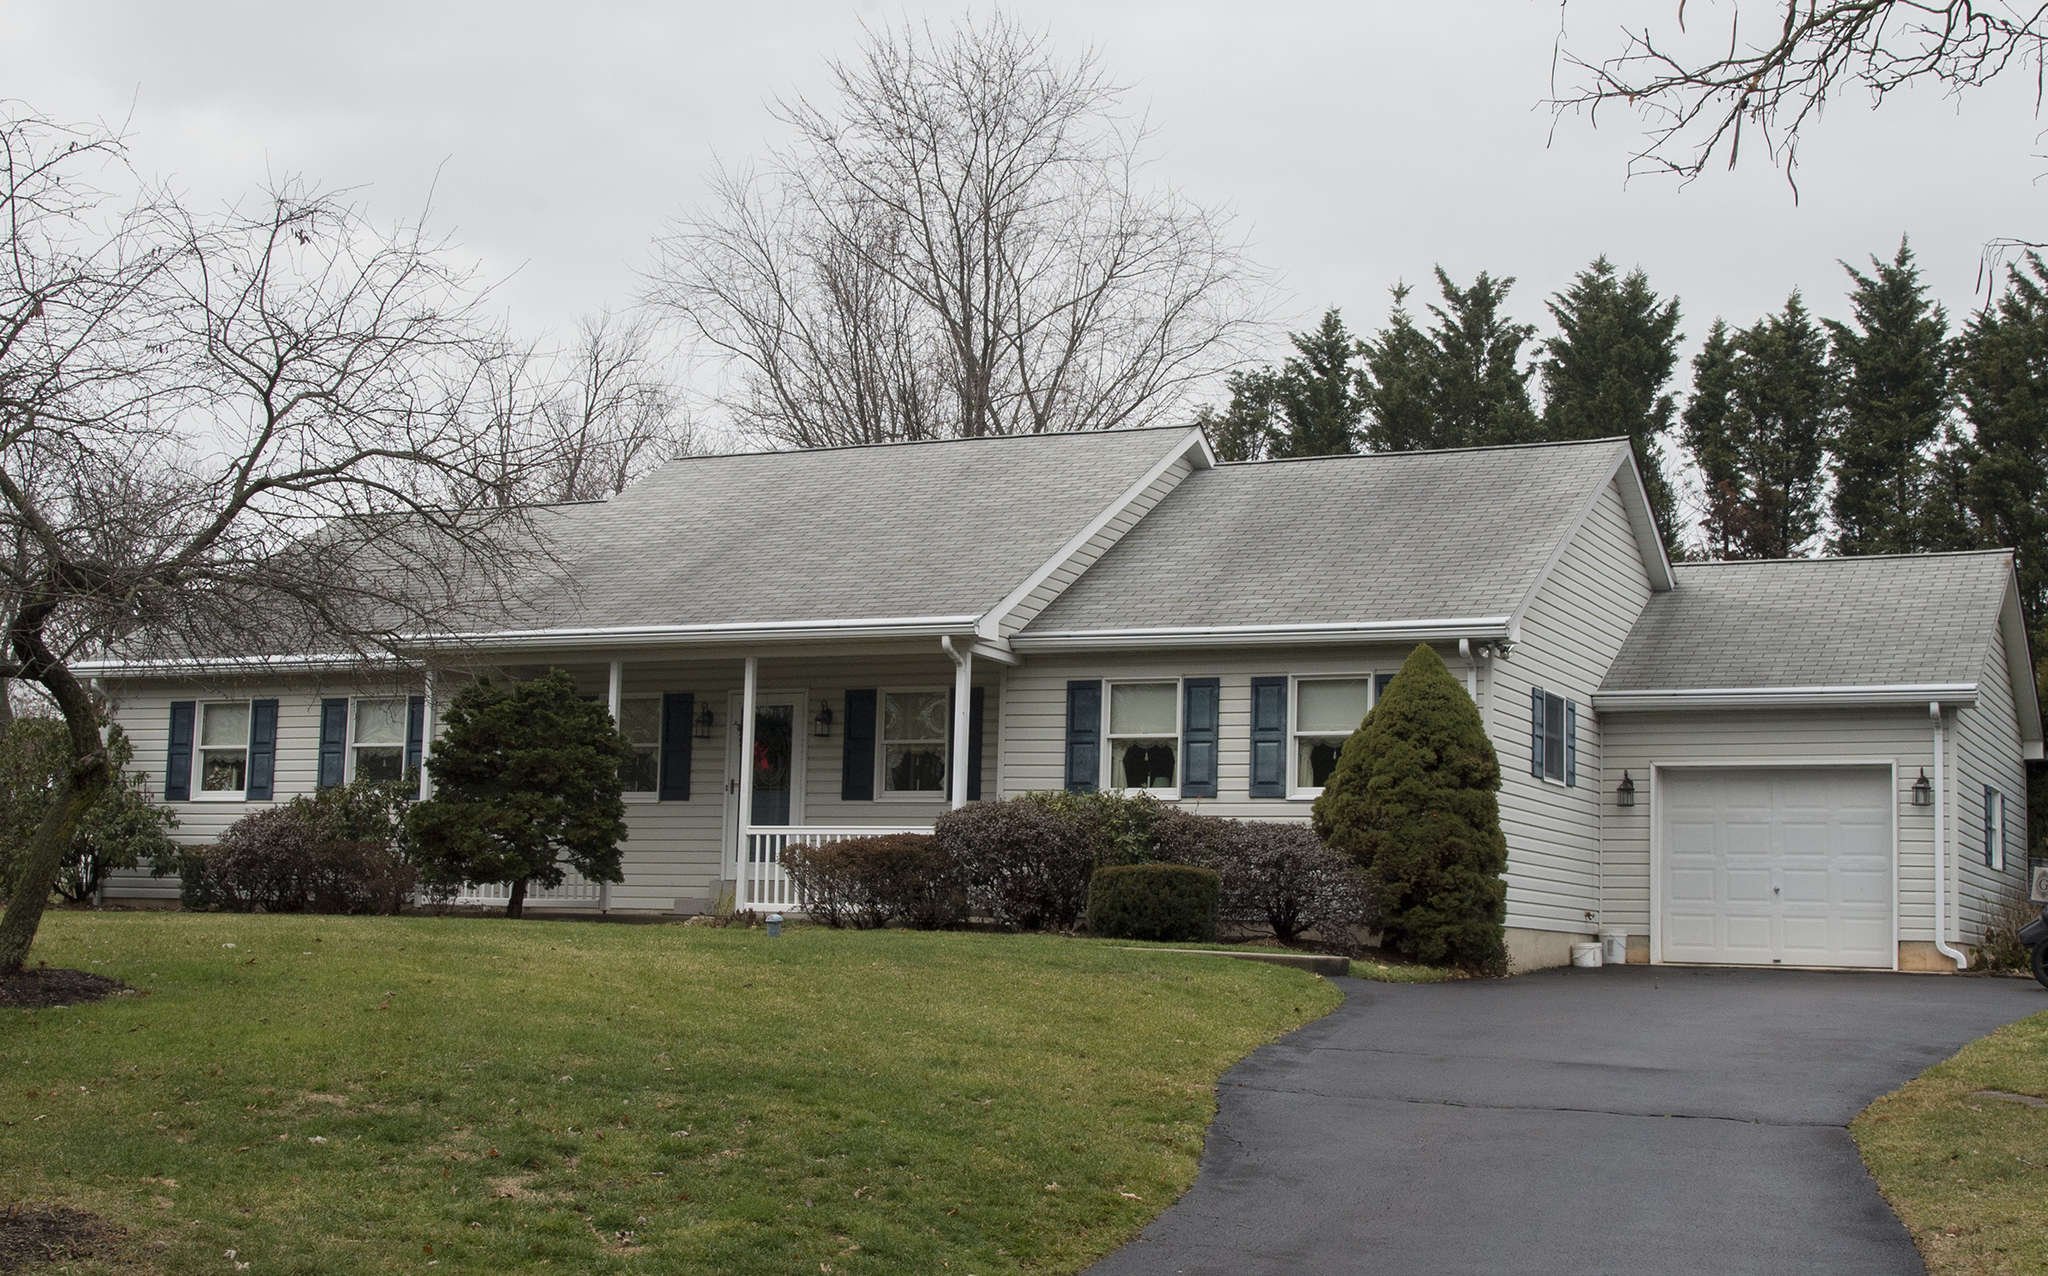 1412 Deer Run Rd. (above) in Hatfield is listed for $335,000.